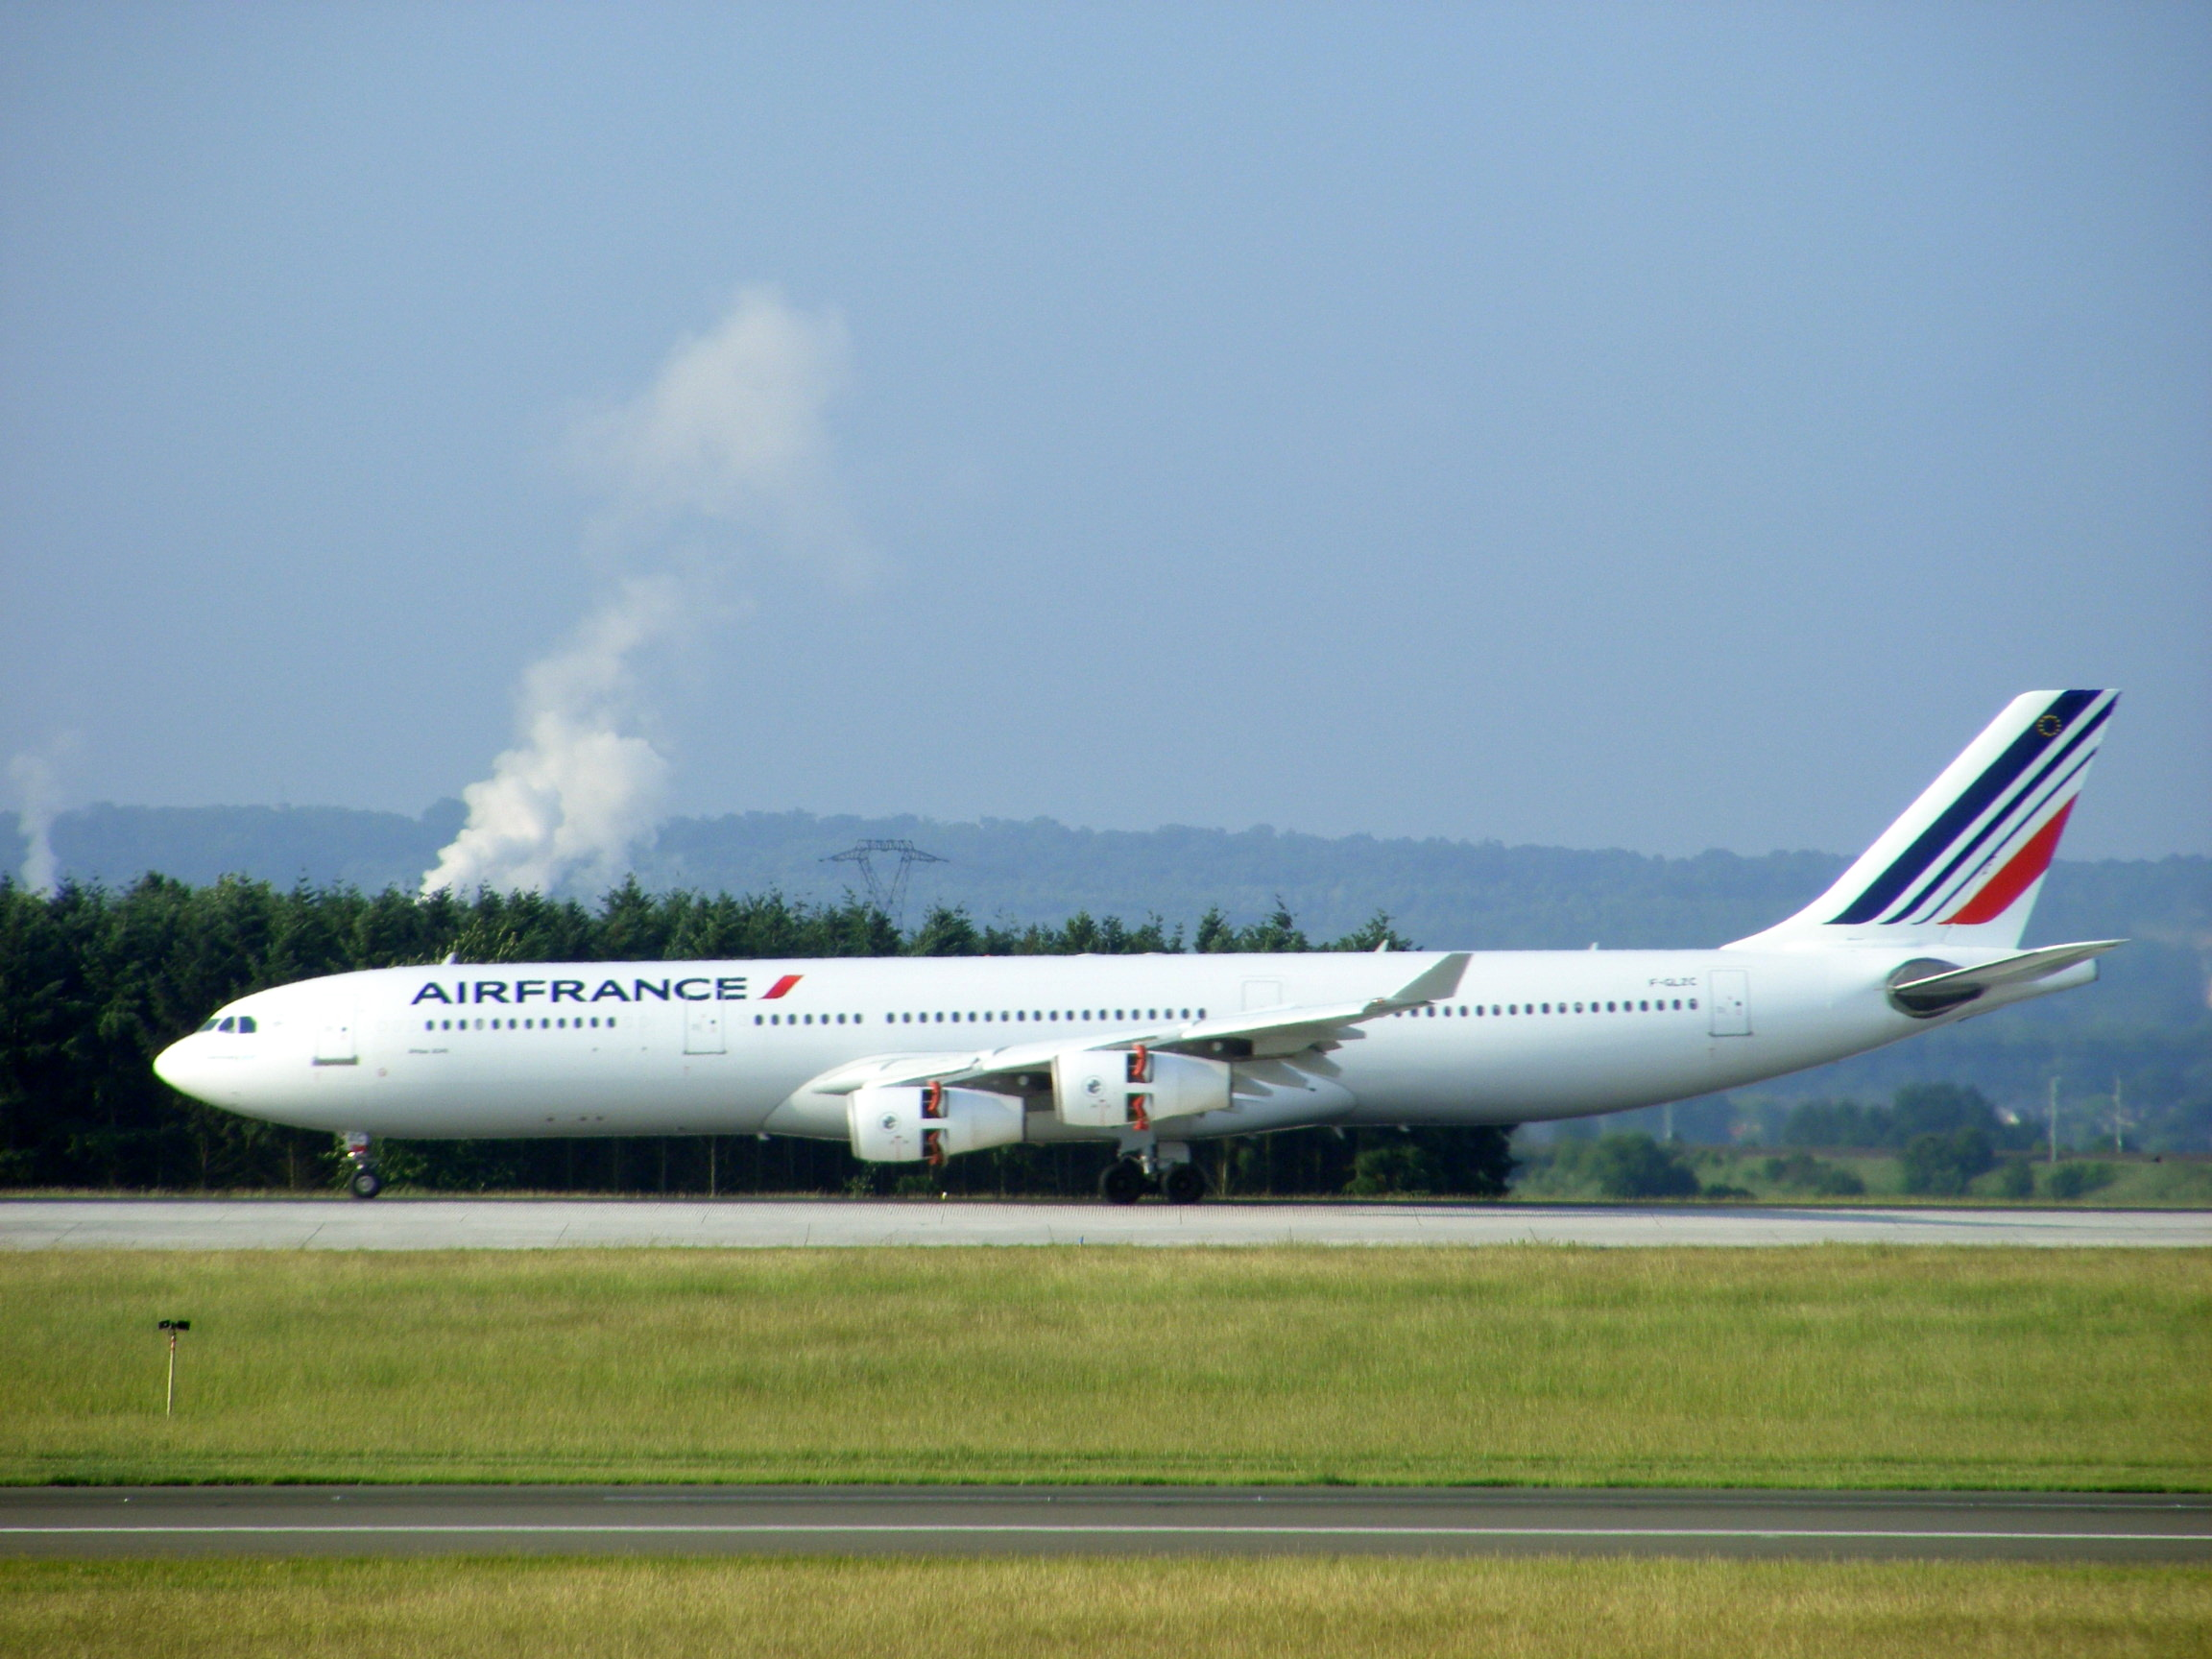 file air france airbus a340 311 f glzc paris wikimedia commons. Black Bedroom Furniture Sets. Home Design Ideas